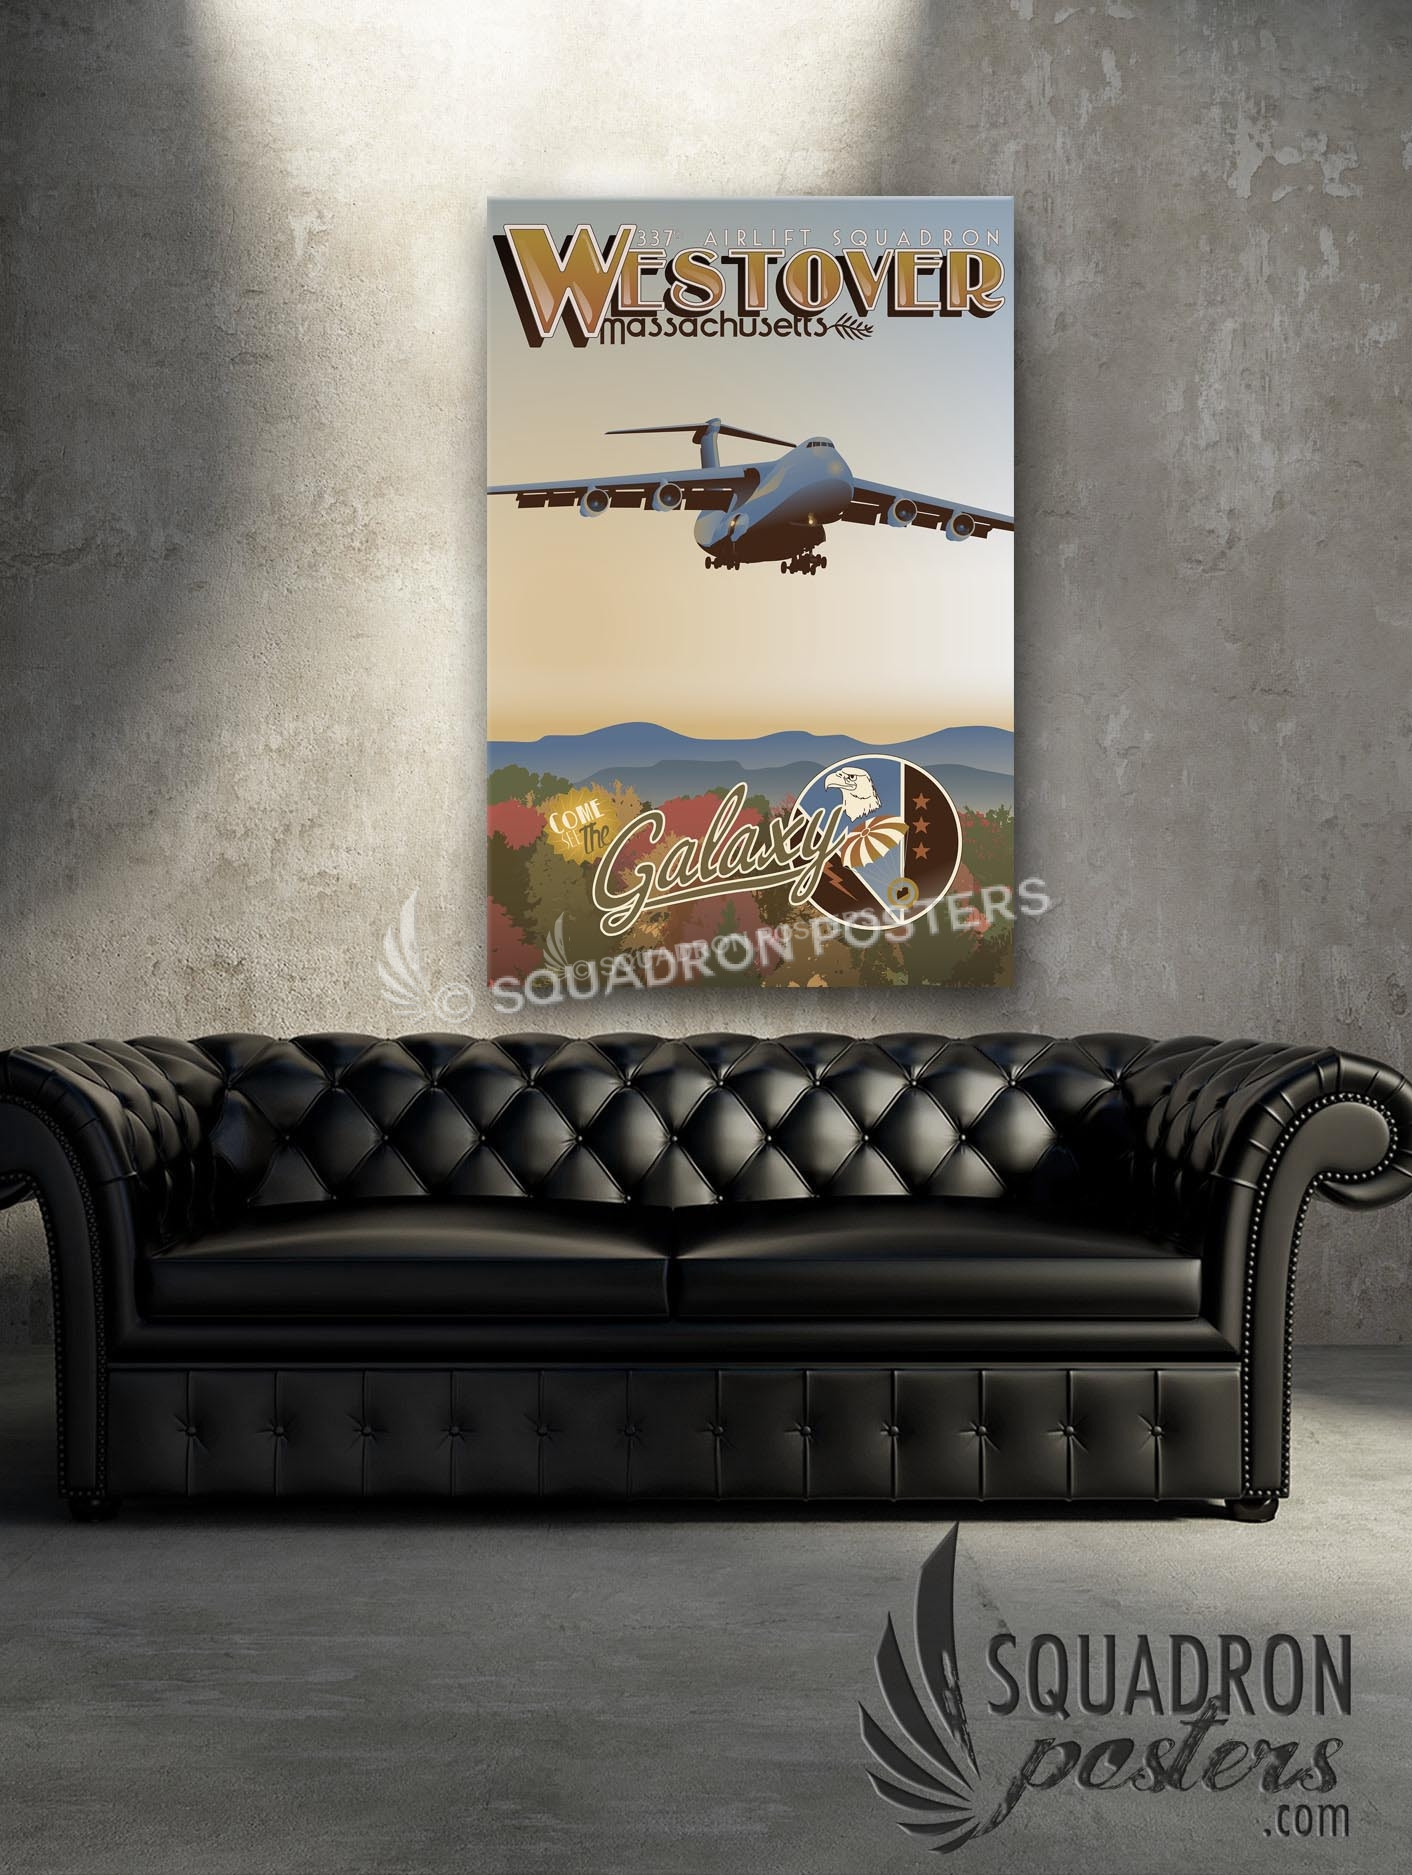 westover arb 337th as c 5 squadron posters 337th c5 20x30 sp00543 vintage military aviation canvas travel print